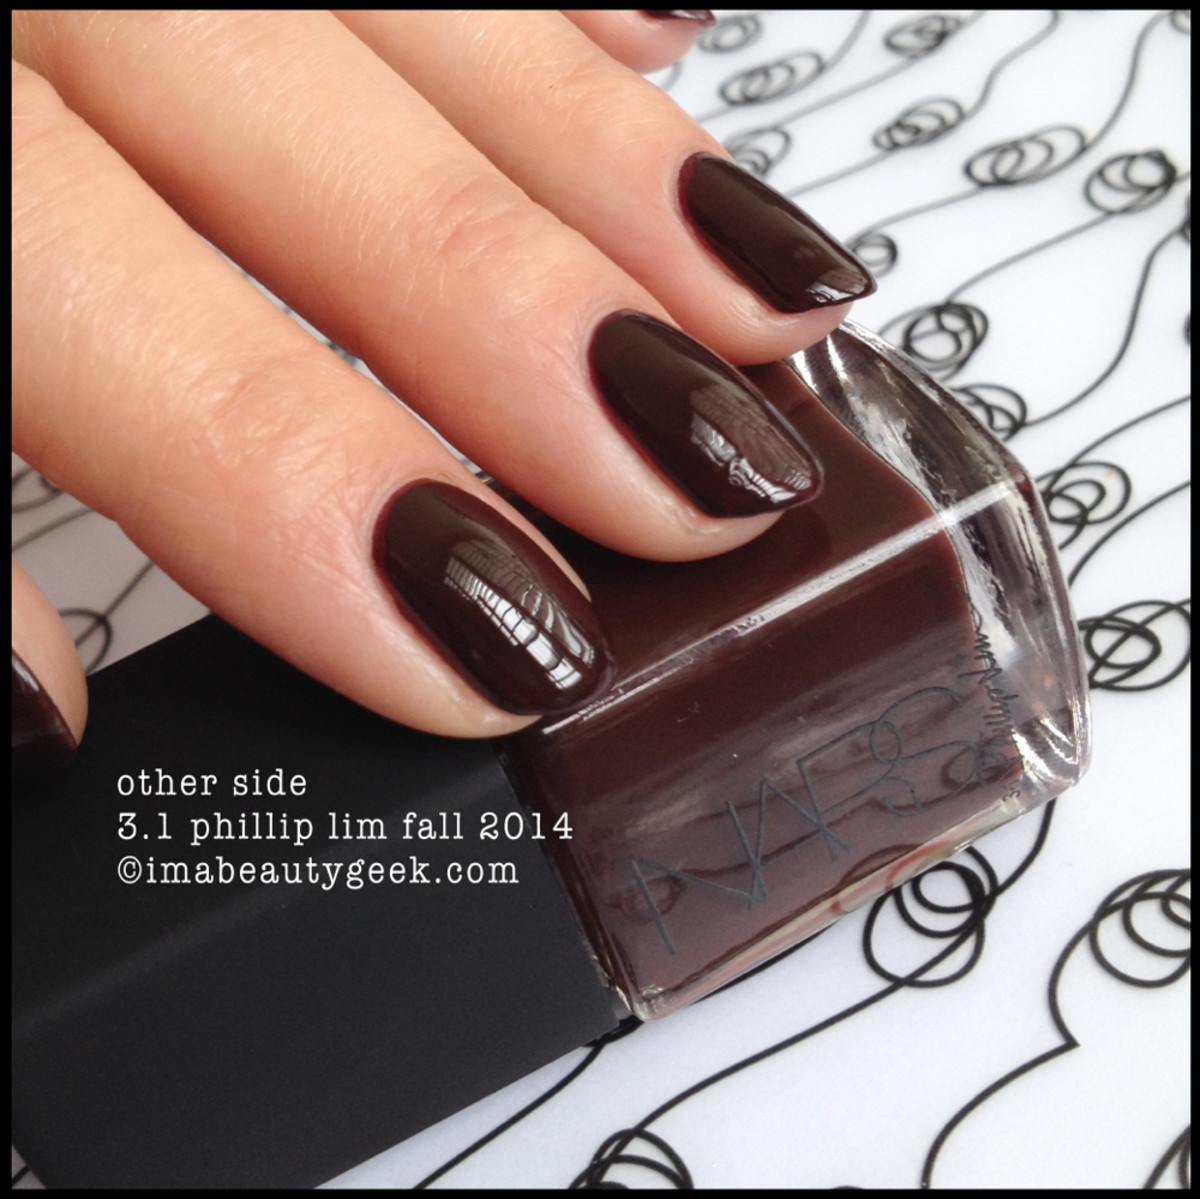 NARS polish Other Side 3.1 Phillip Lim Fall 2014